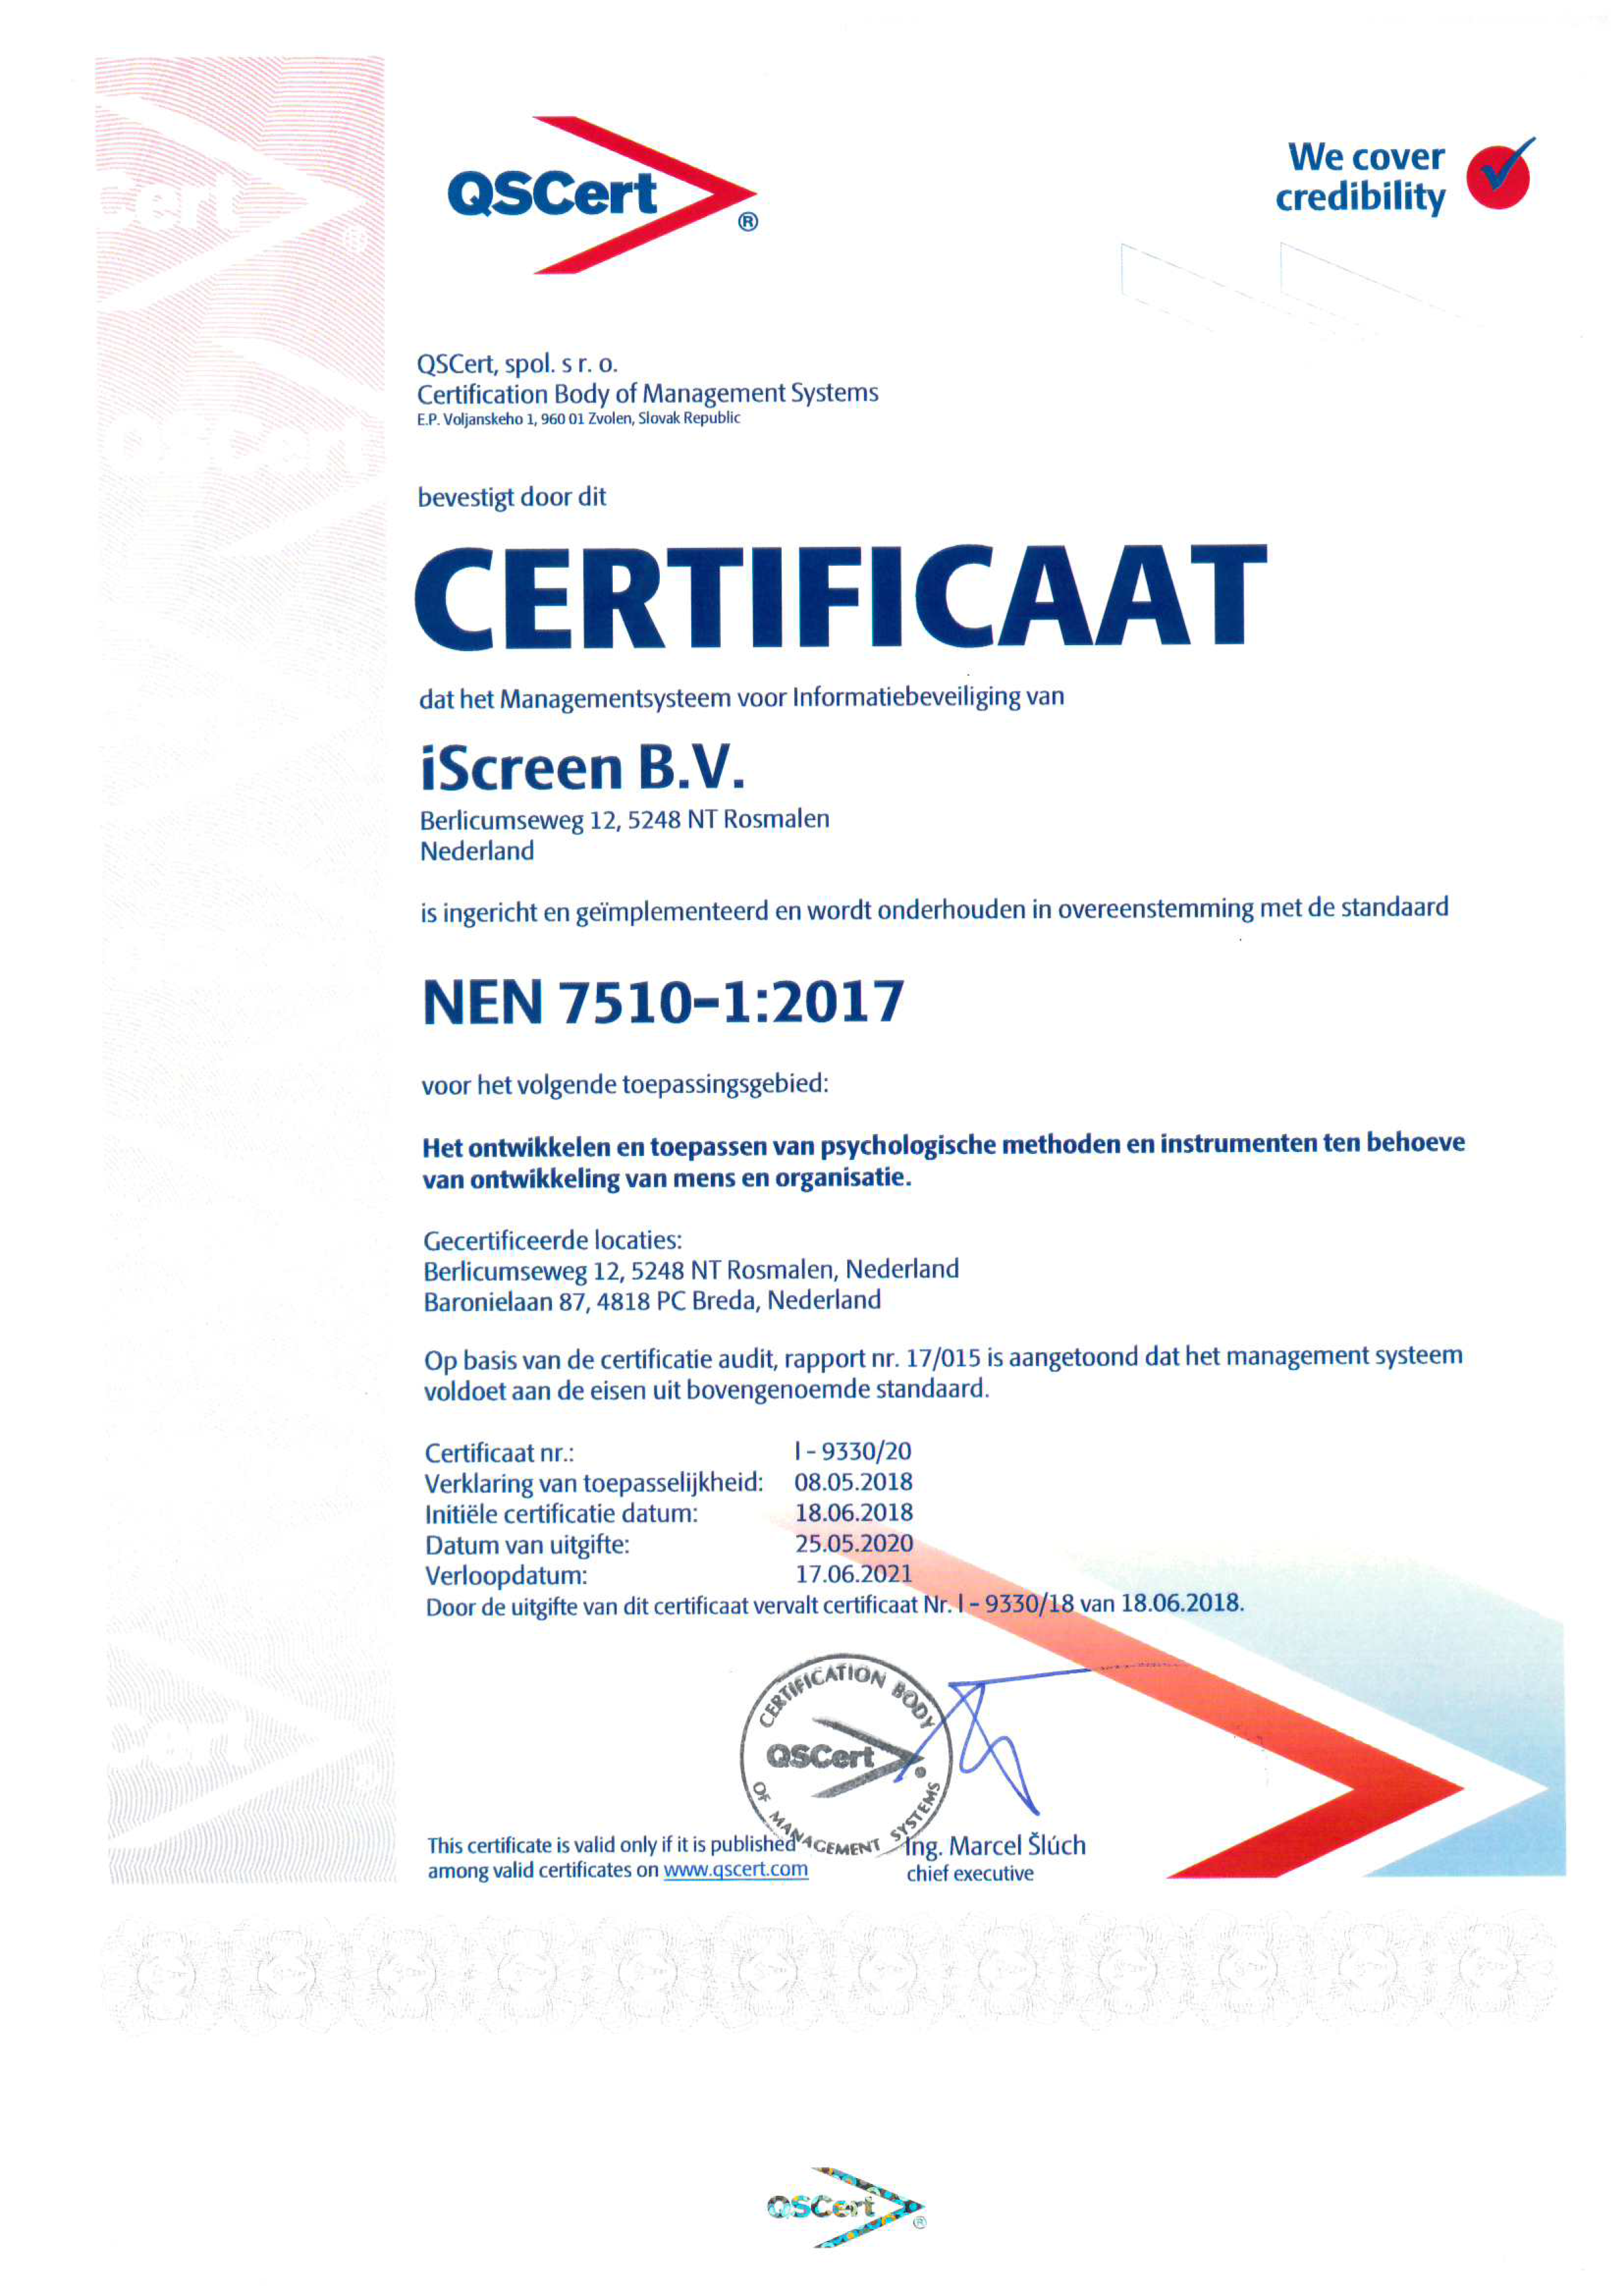 20_015_9_Certificate_7510_NL_signed.png?hash=8c204ab318568061